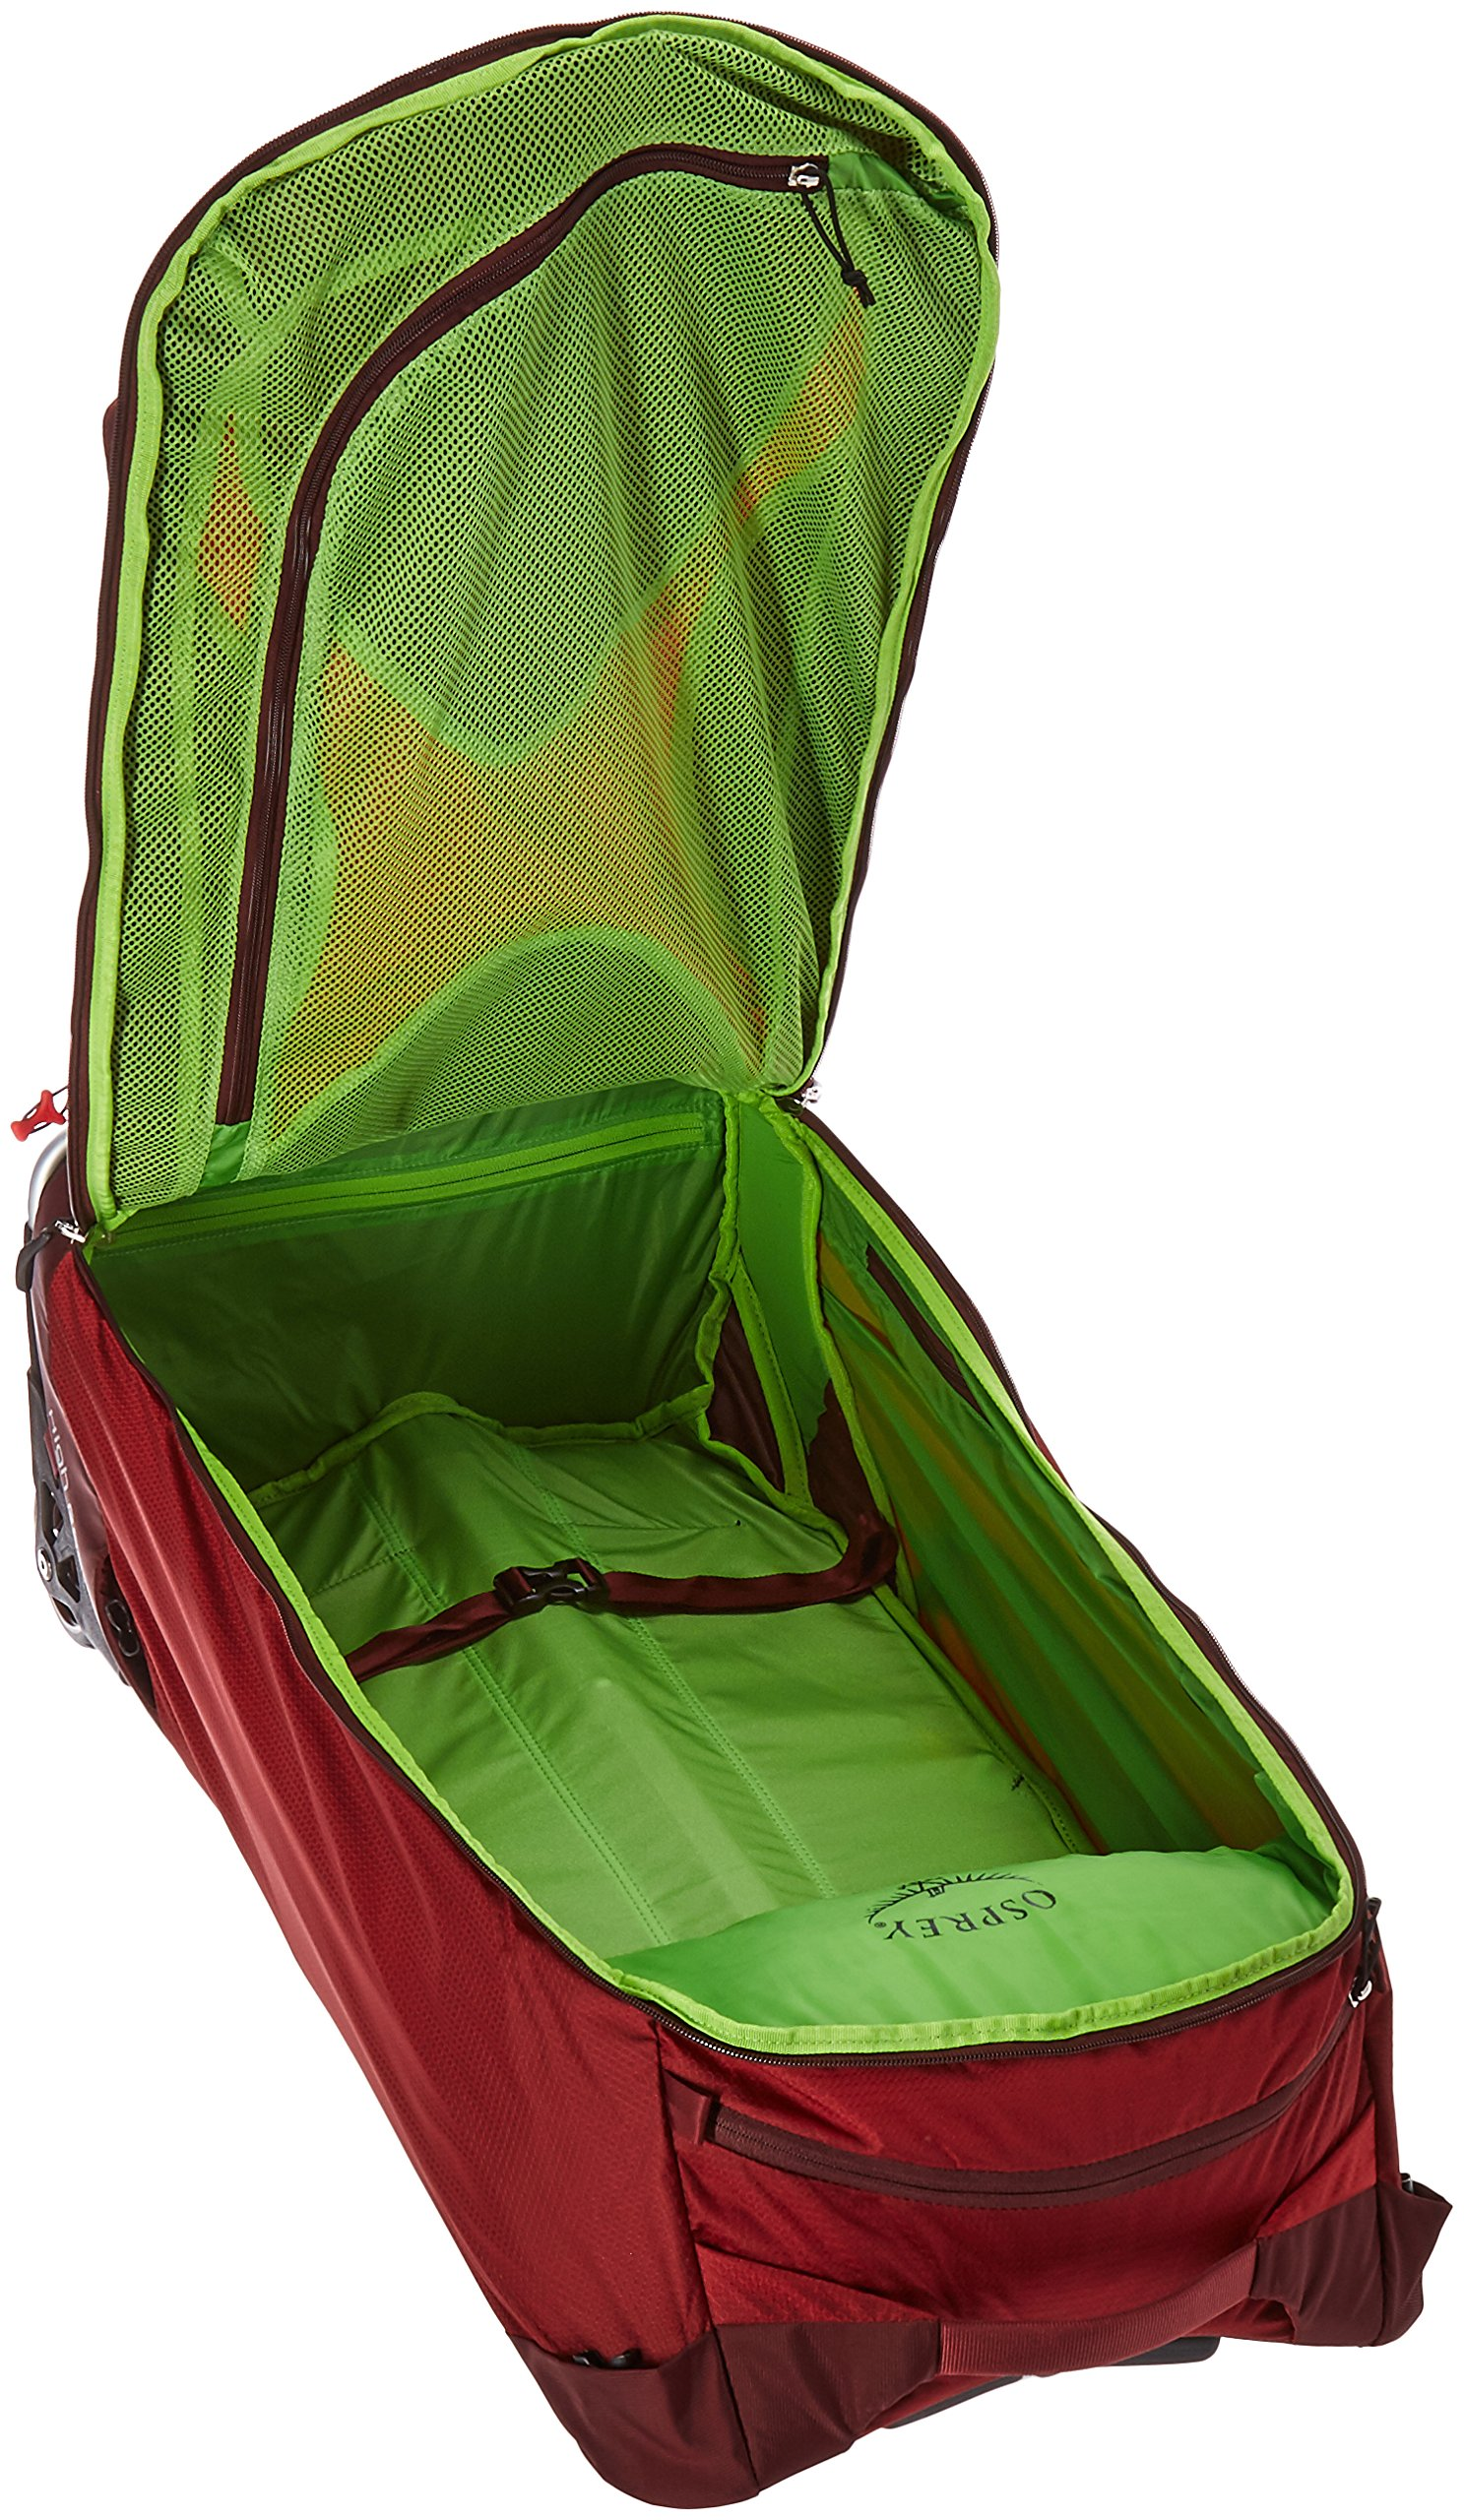 Best Wheeled Backpack for Travel  Osprey Ozone Convertible 28